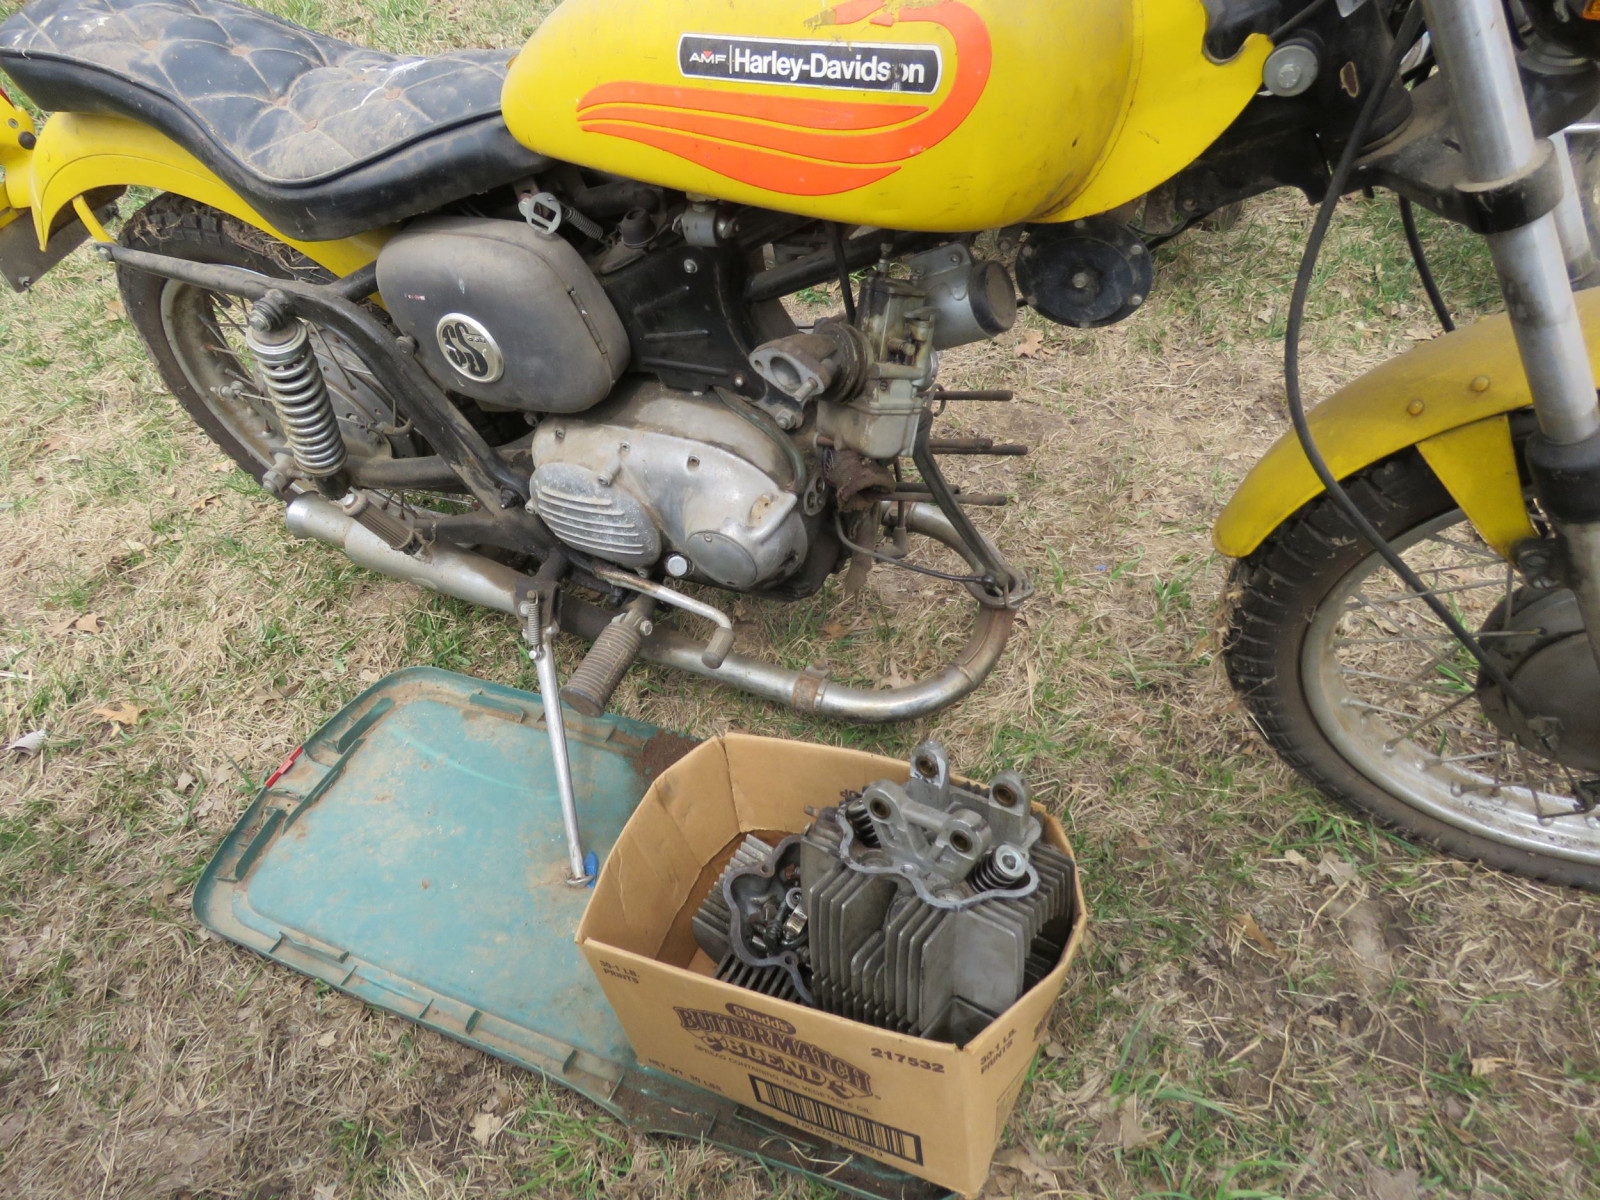 1971 Harley Davidson-AMF H2 Sprint GS350 Motorcycle for Project - Image 3